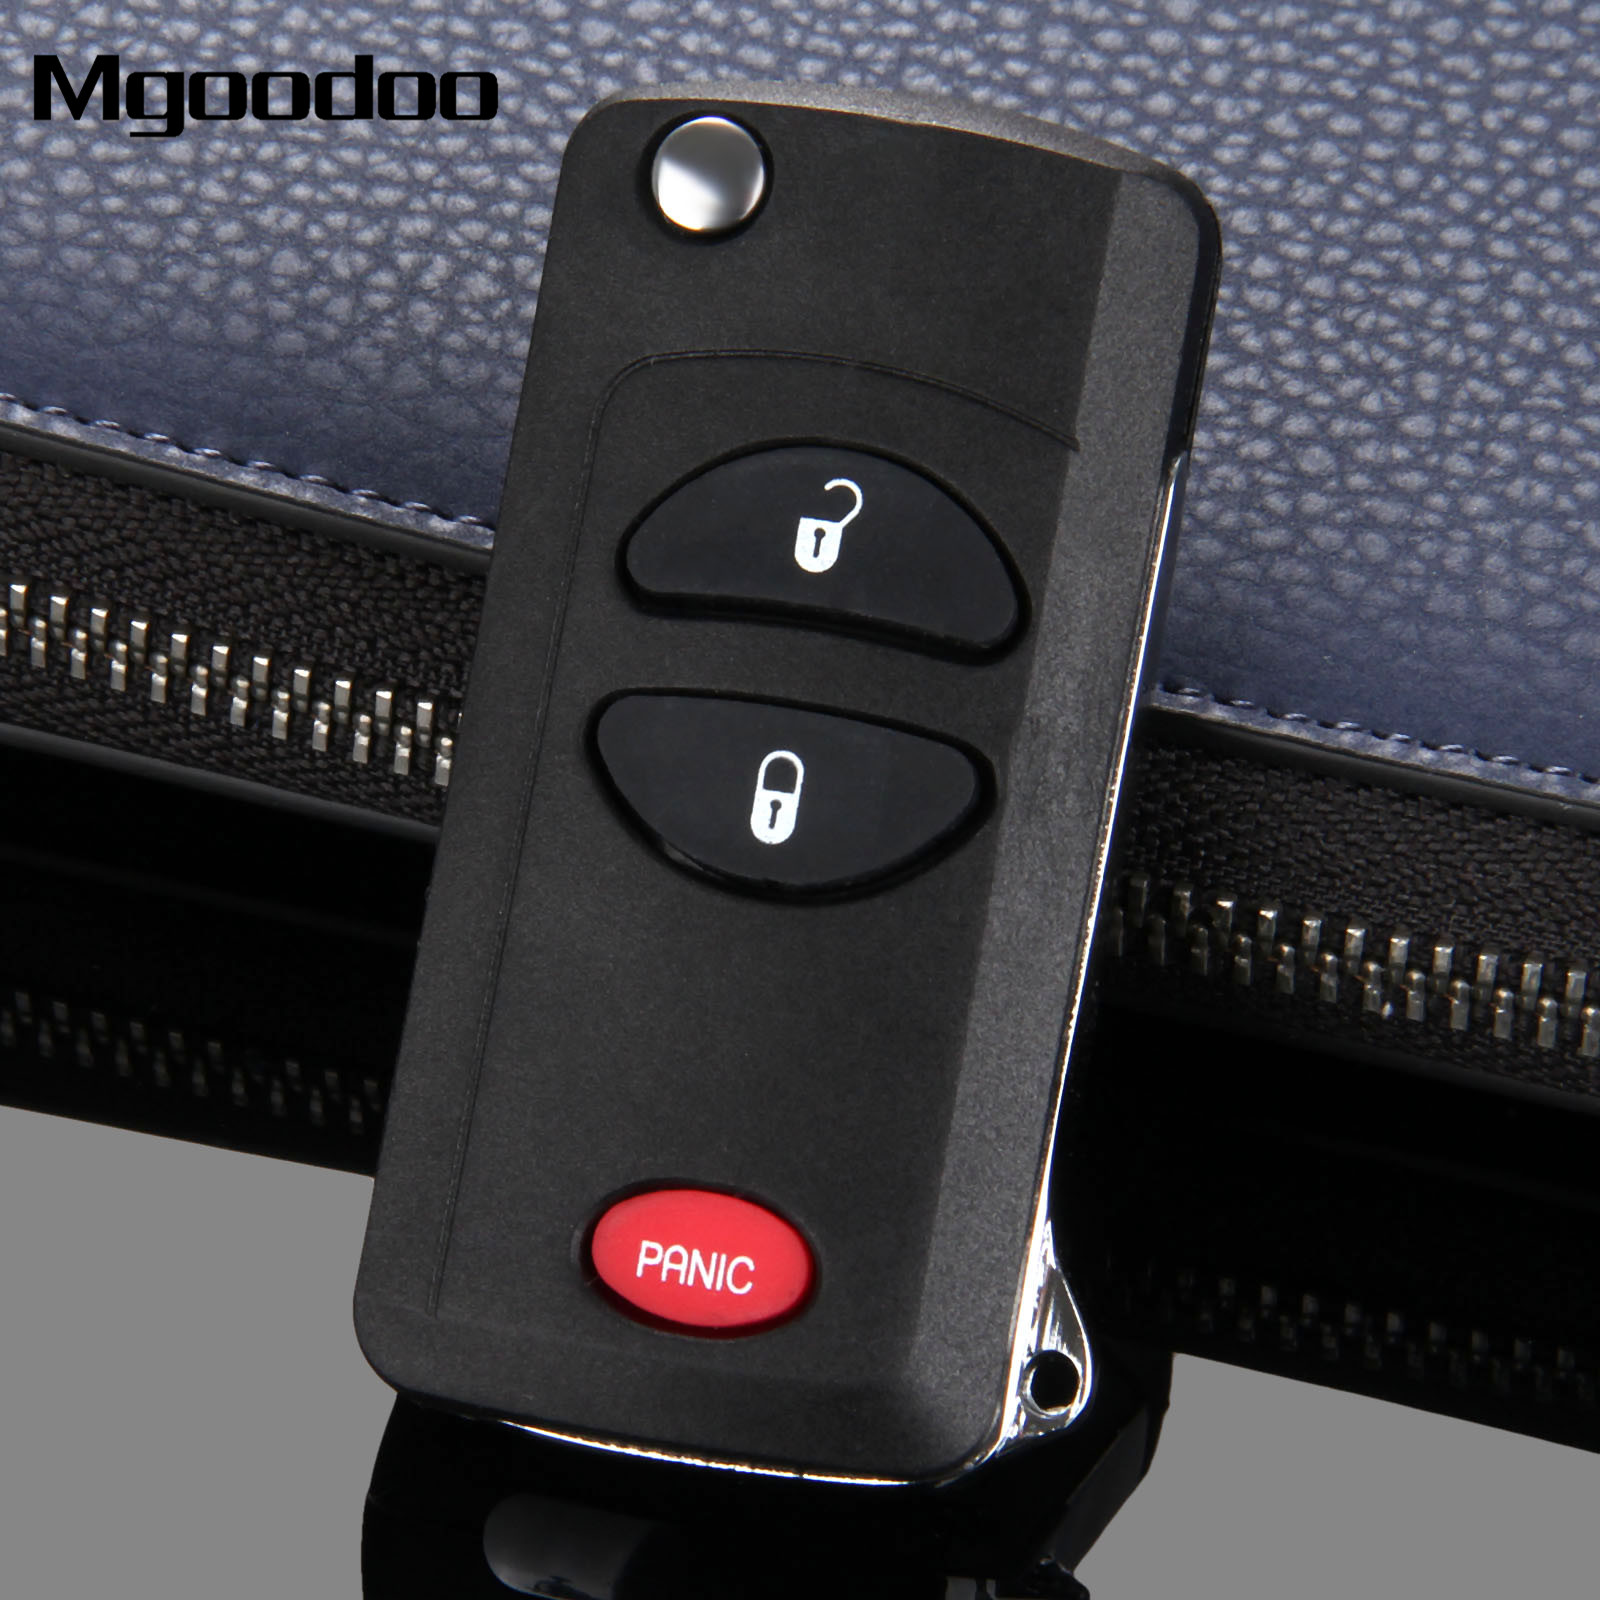 Mgoodoo 2+1 Panic Button Remote Flip Folding Key Shell Case Car-covers For Chrysler Voyager Town & Country PT Cruiser Dodge Jeep